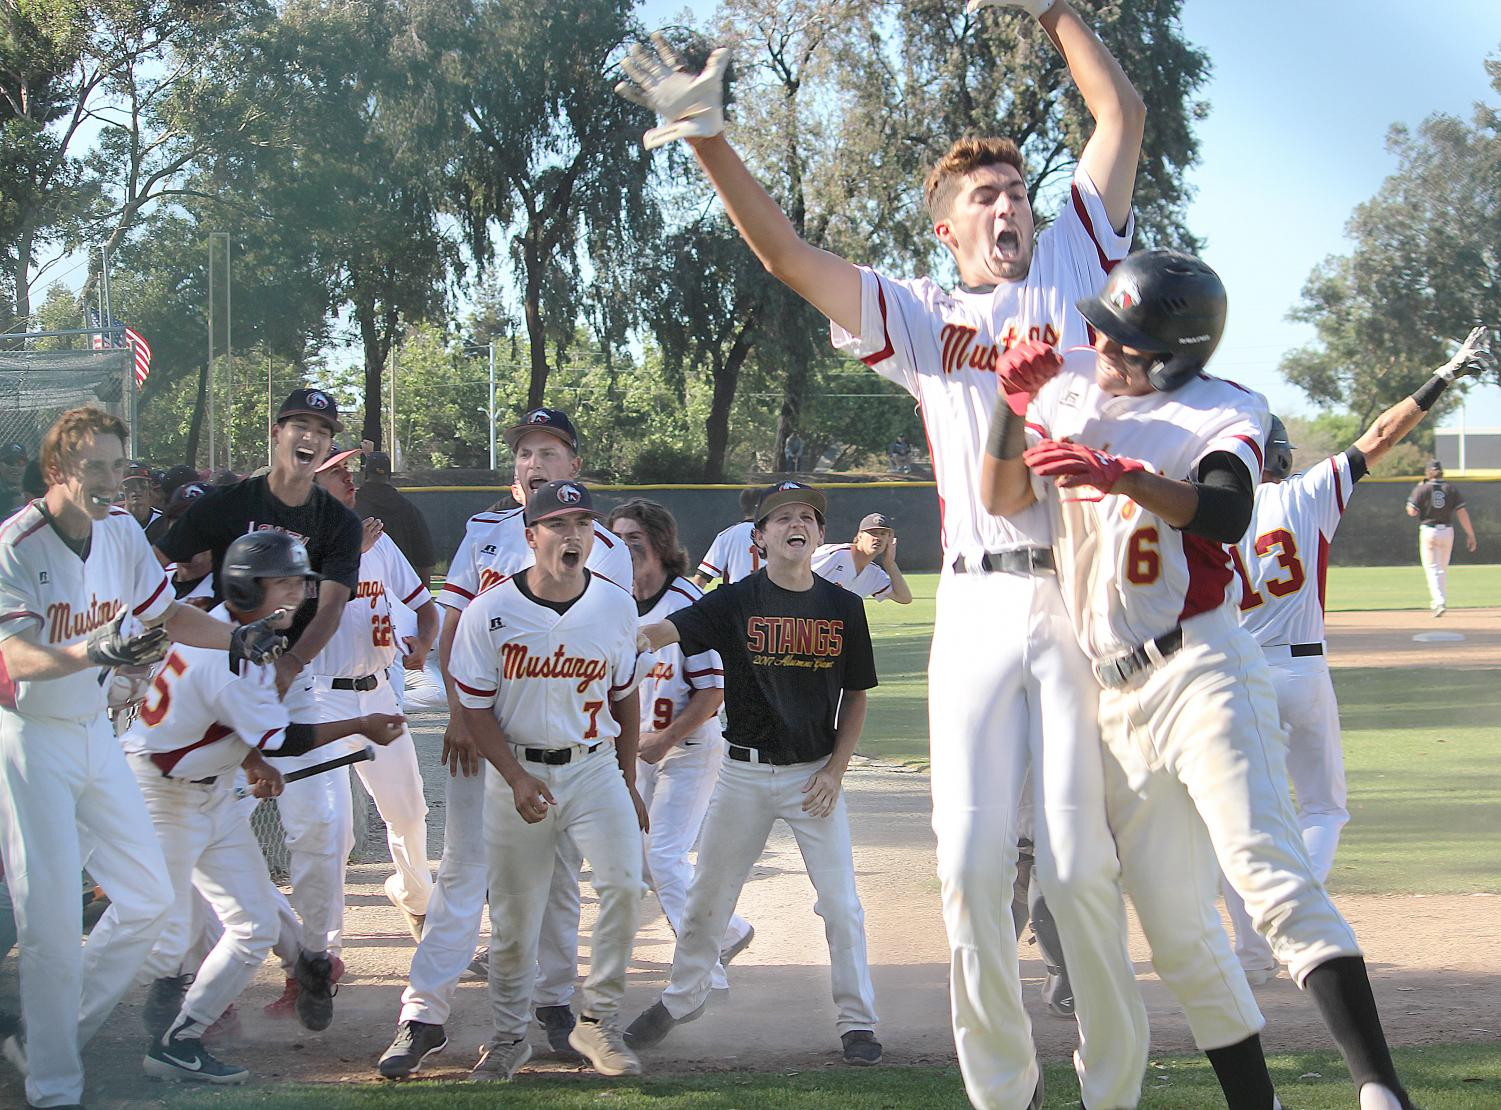 The LMC baseball team celebrates after it beat Mission college 11-7 May 4 to advance in the California Community College Athletics Association playoffs.